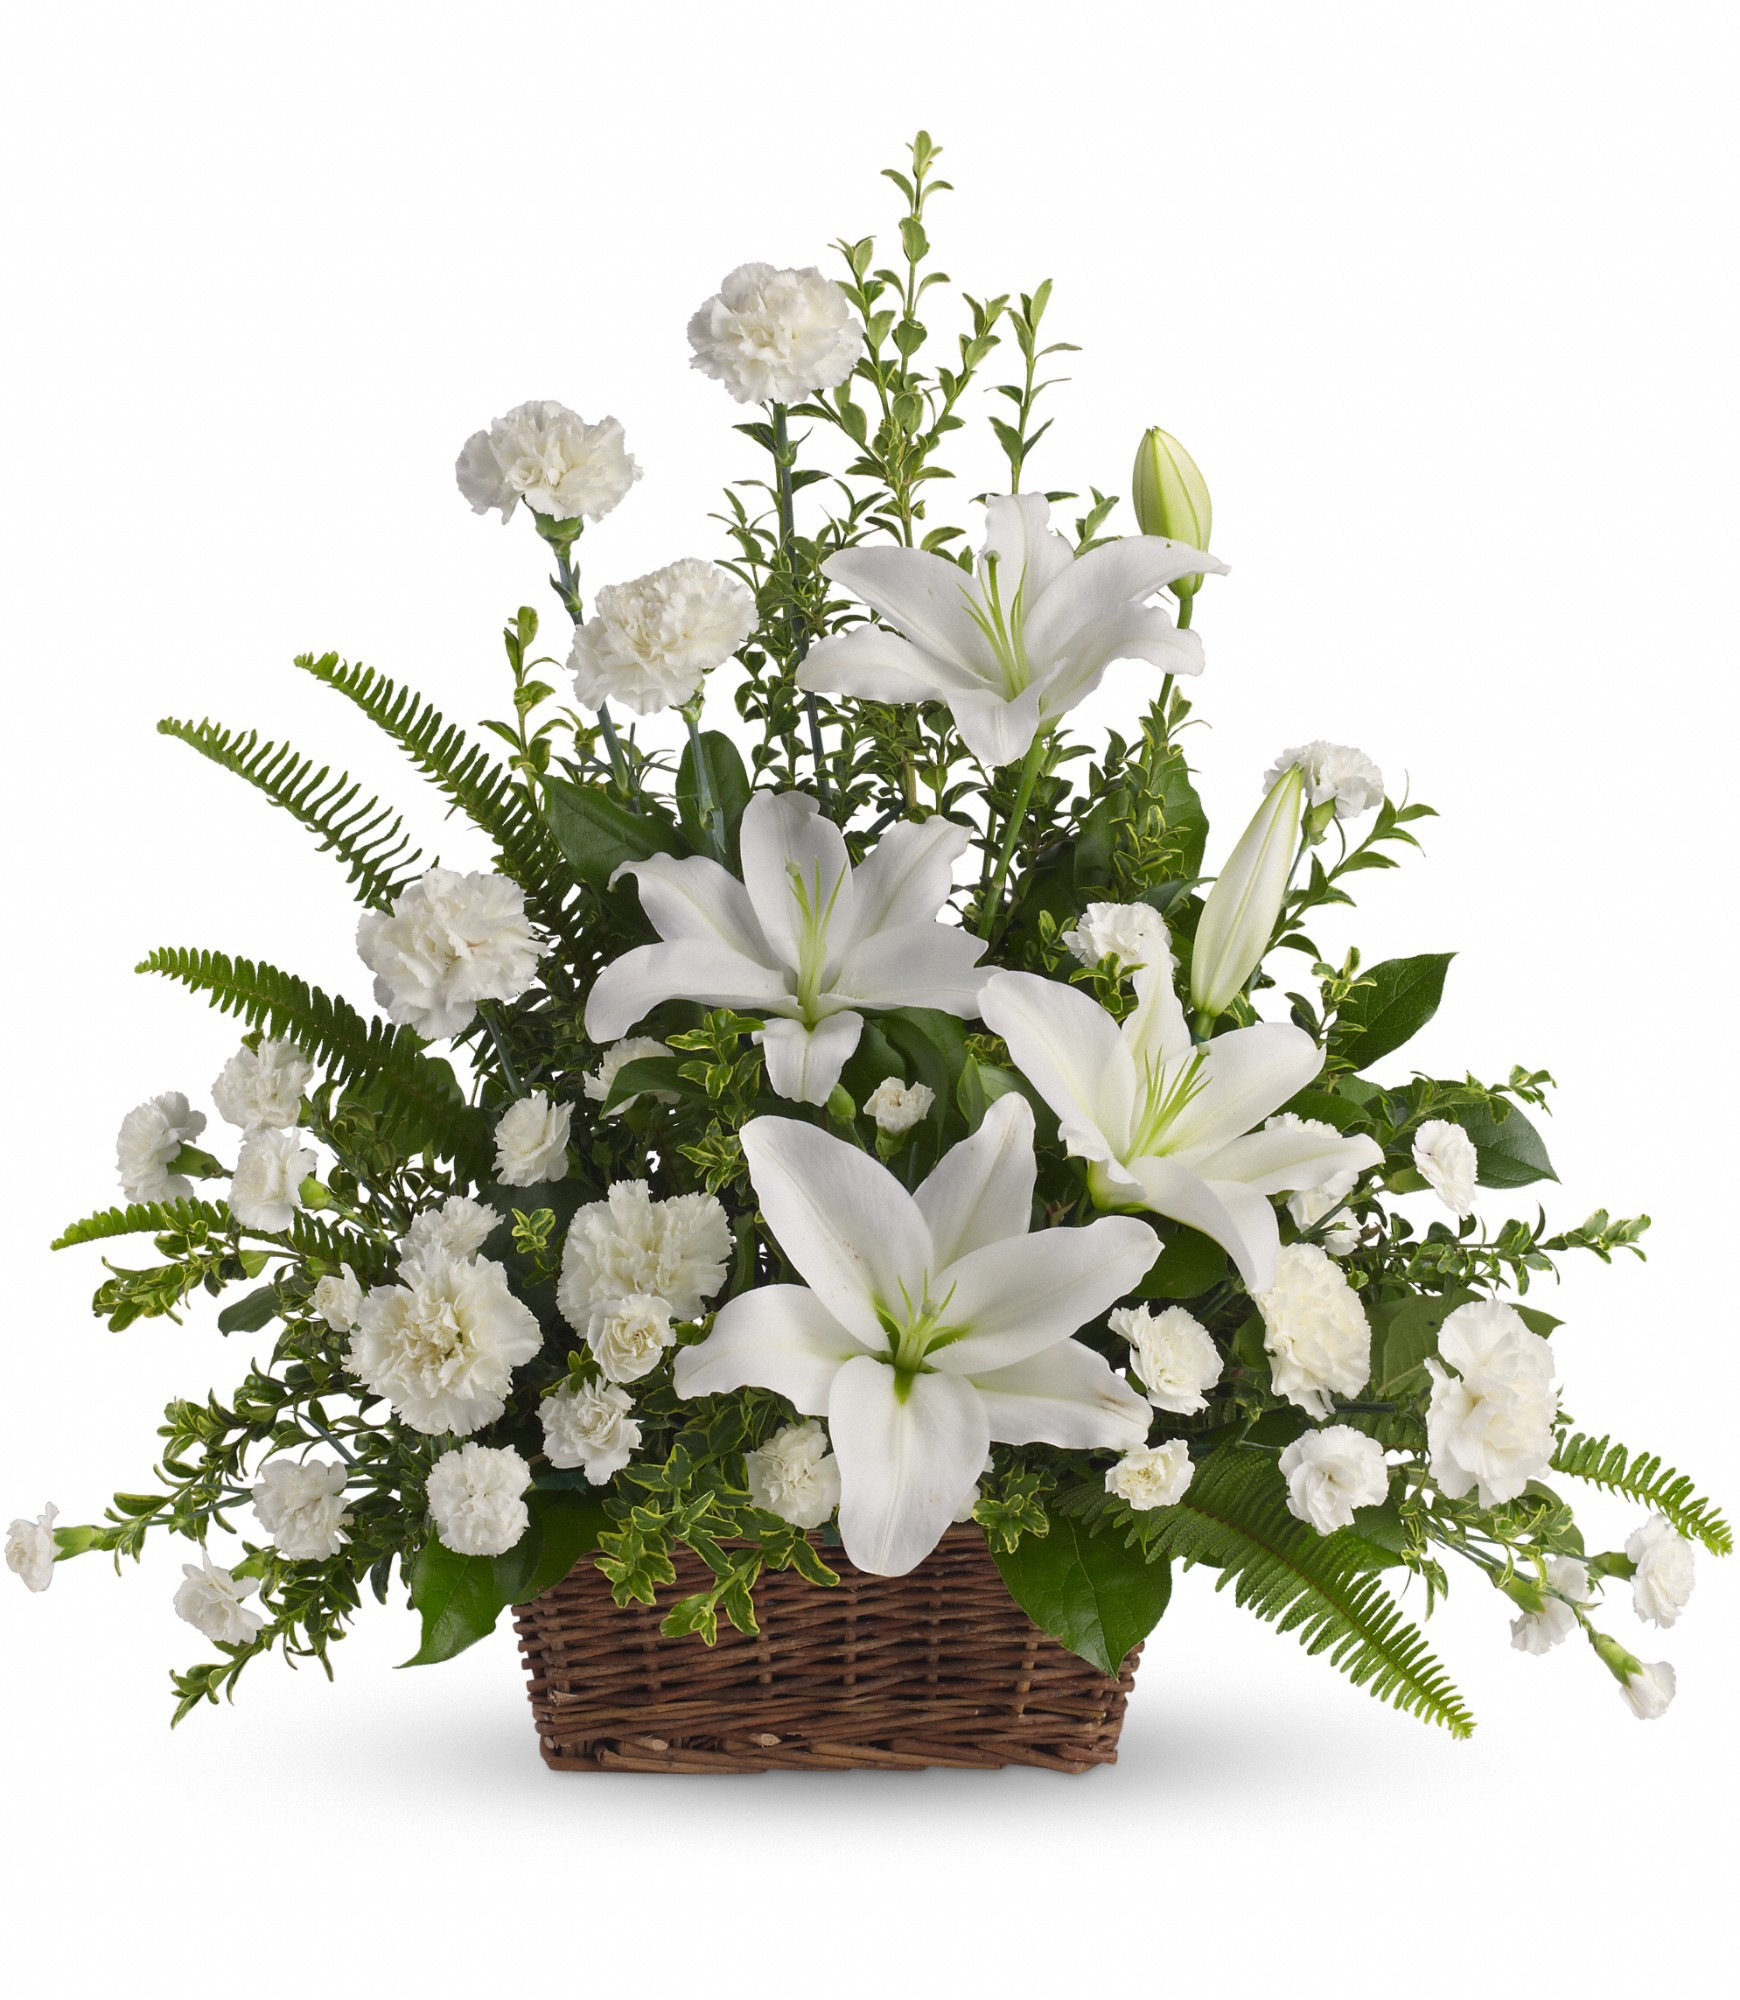 Teleflora Gift Vase Of Peaceful White Lilies Basket by Teleflora T228 1a In Bensalem Pa Regarding Peaceful White Lilies Basket by Teleflora T228 1a